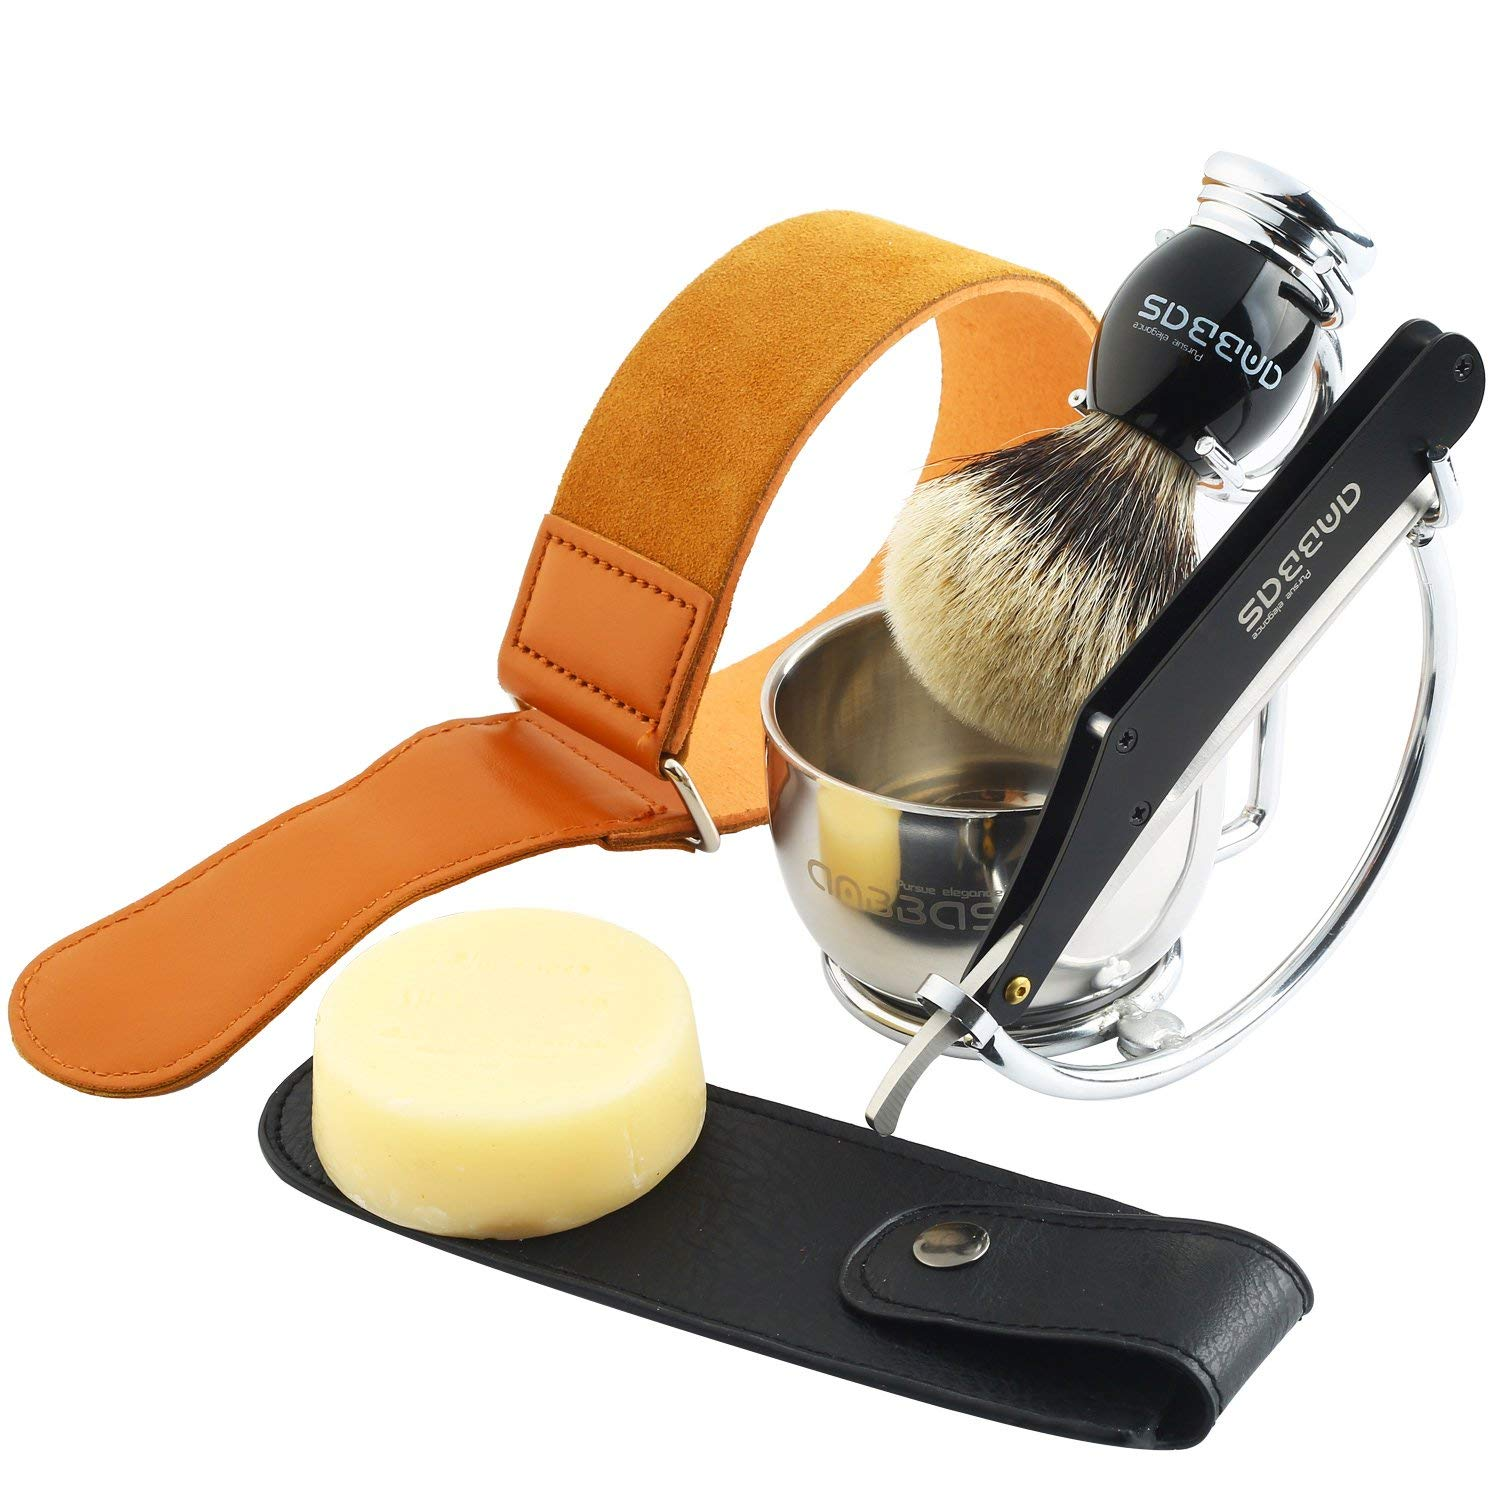 Shaving Set,7in1 Anbbas Silver tip Badger Shaving Brush,Natural Shaving Soap 100g,Stainless Steel Shaving Stand and Bowl,Straight Razor,Genuine Leather Razor Strop,Black Quality Razor Bag Kit